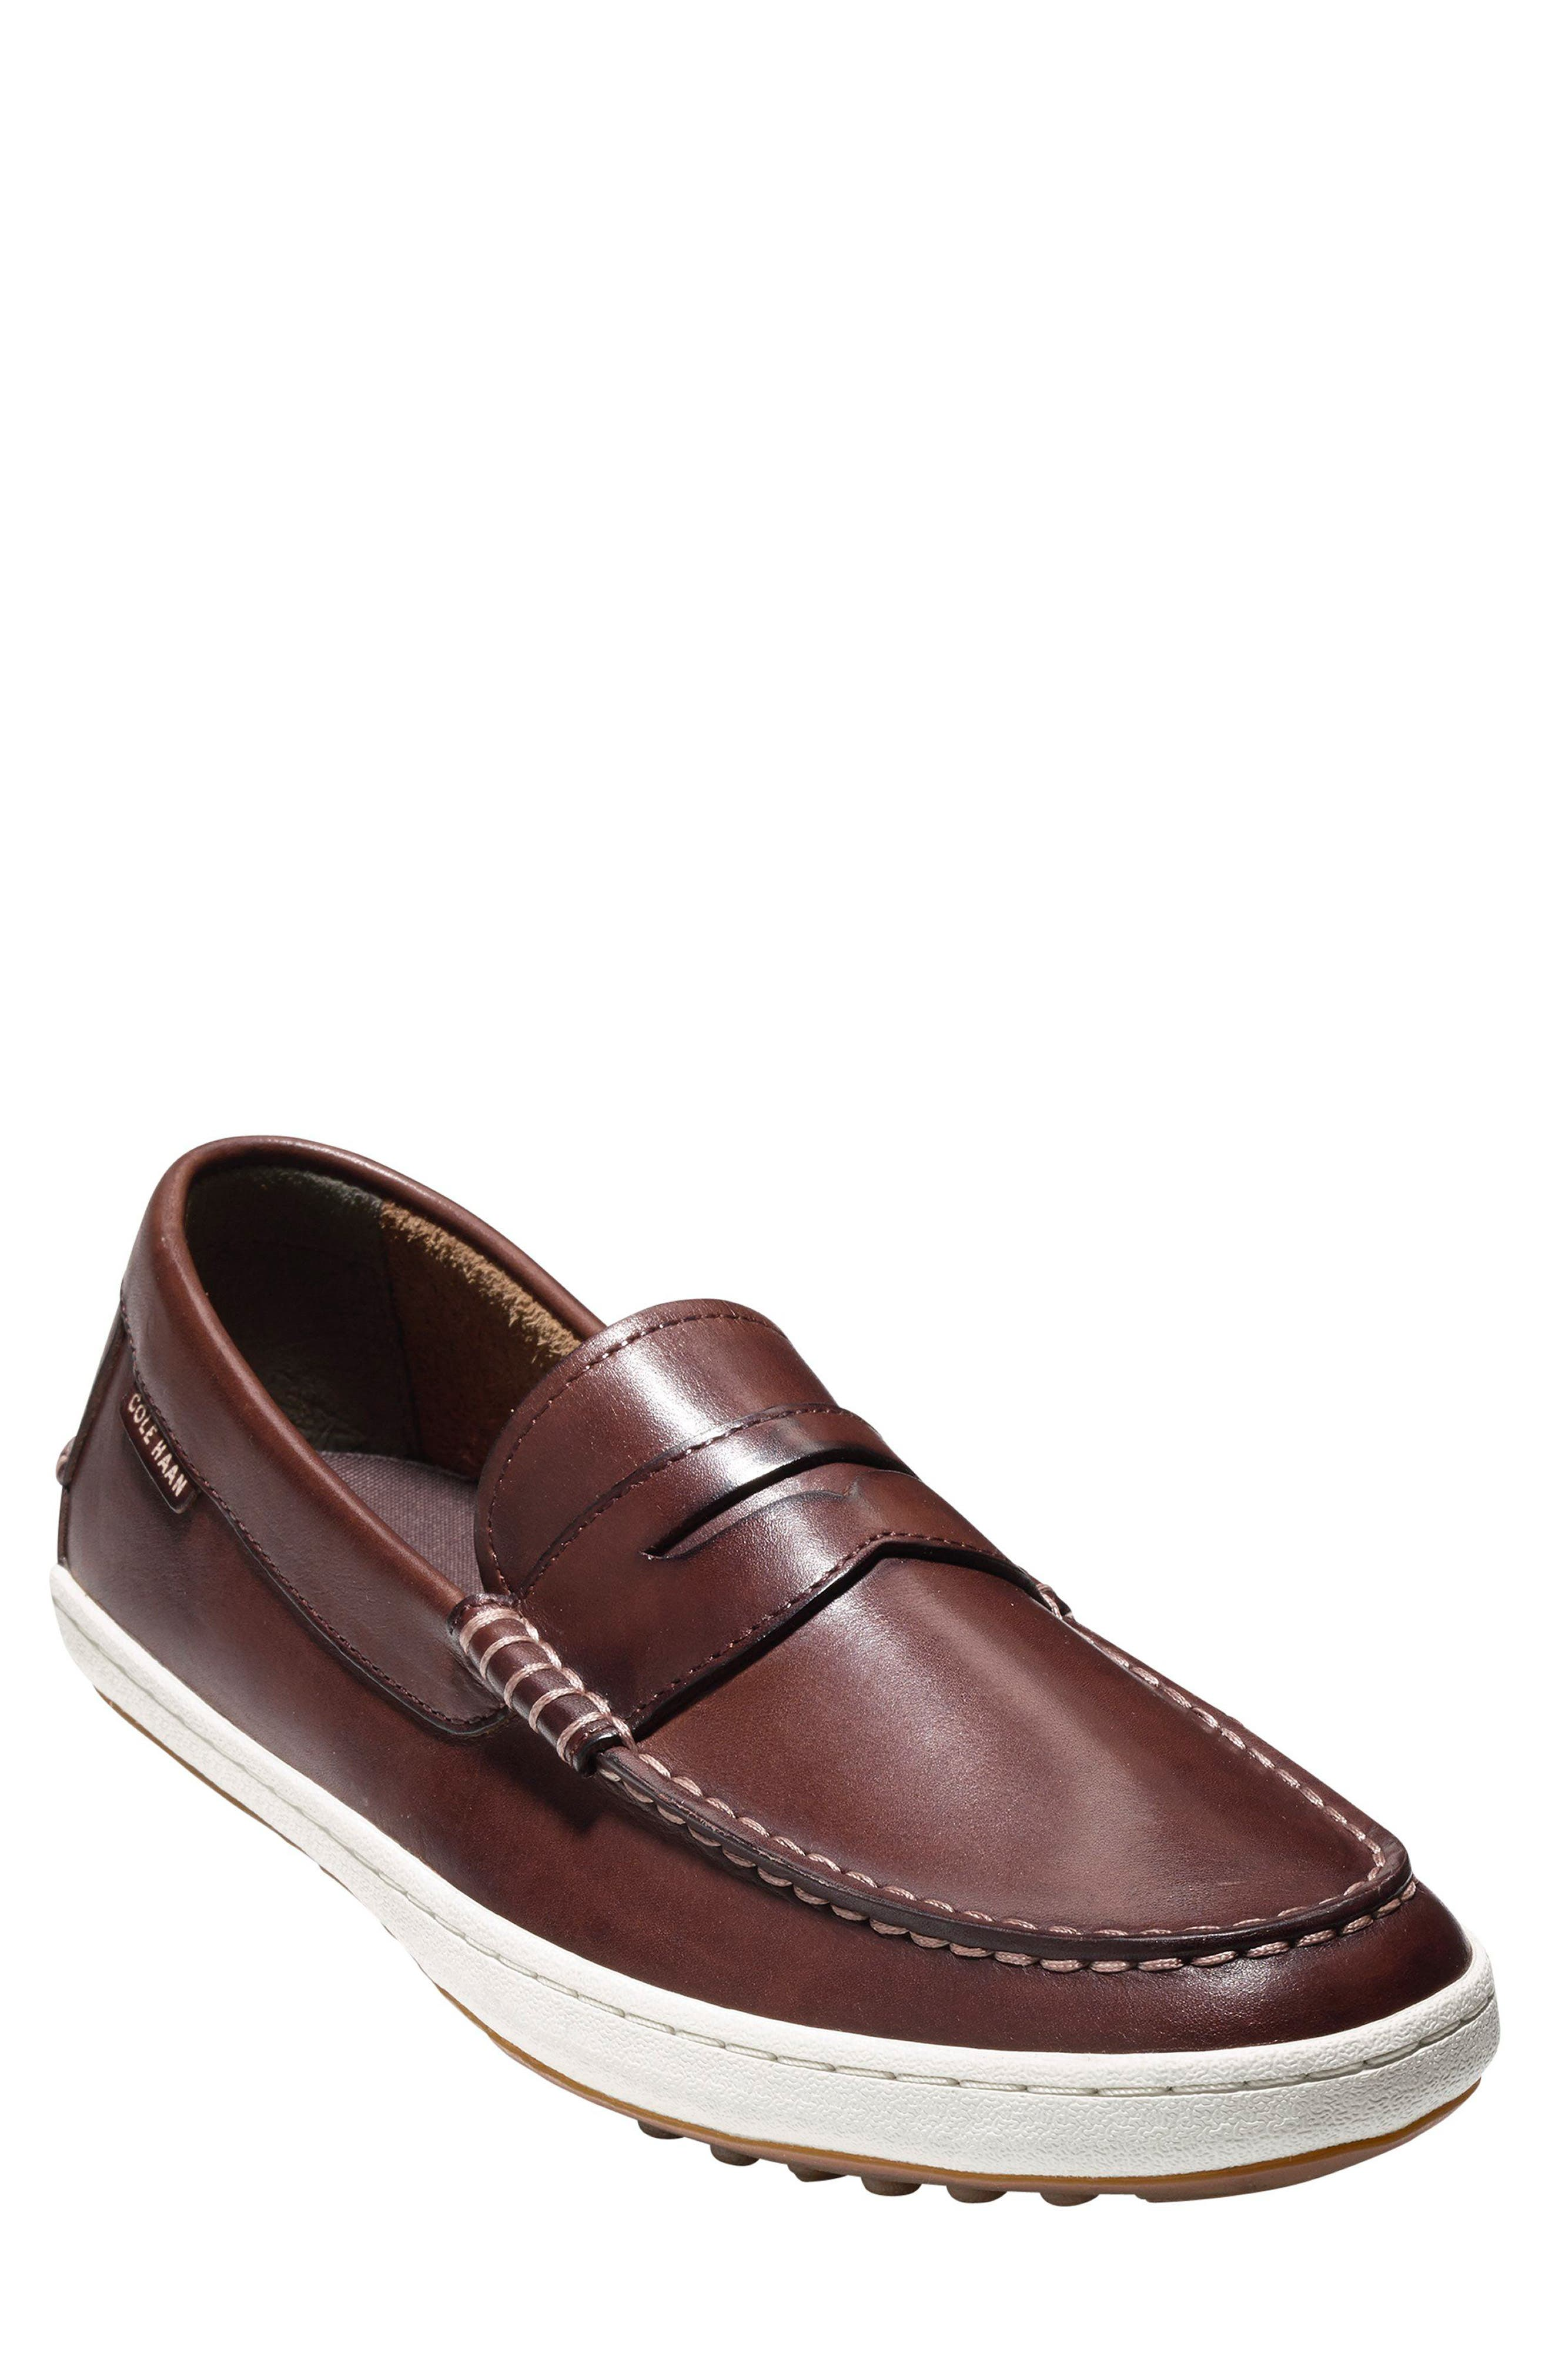 'Pinch Roadtrip' Penny Loafer,                         Main,                         color, Woodbury Leather